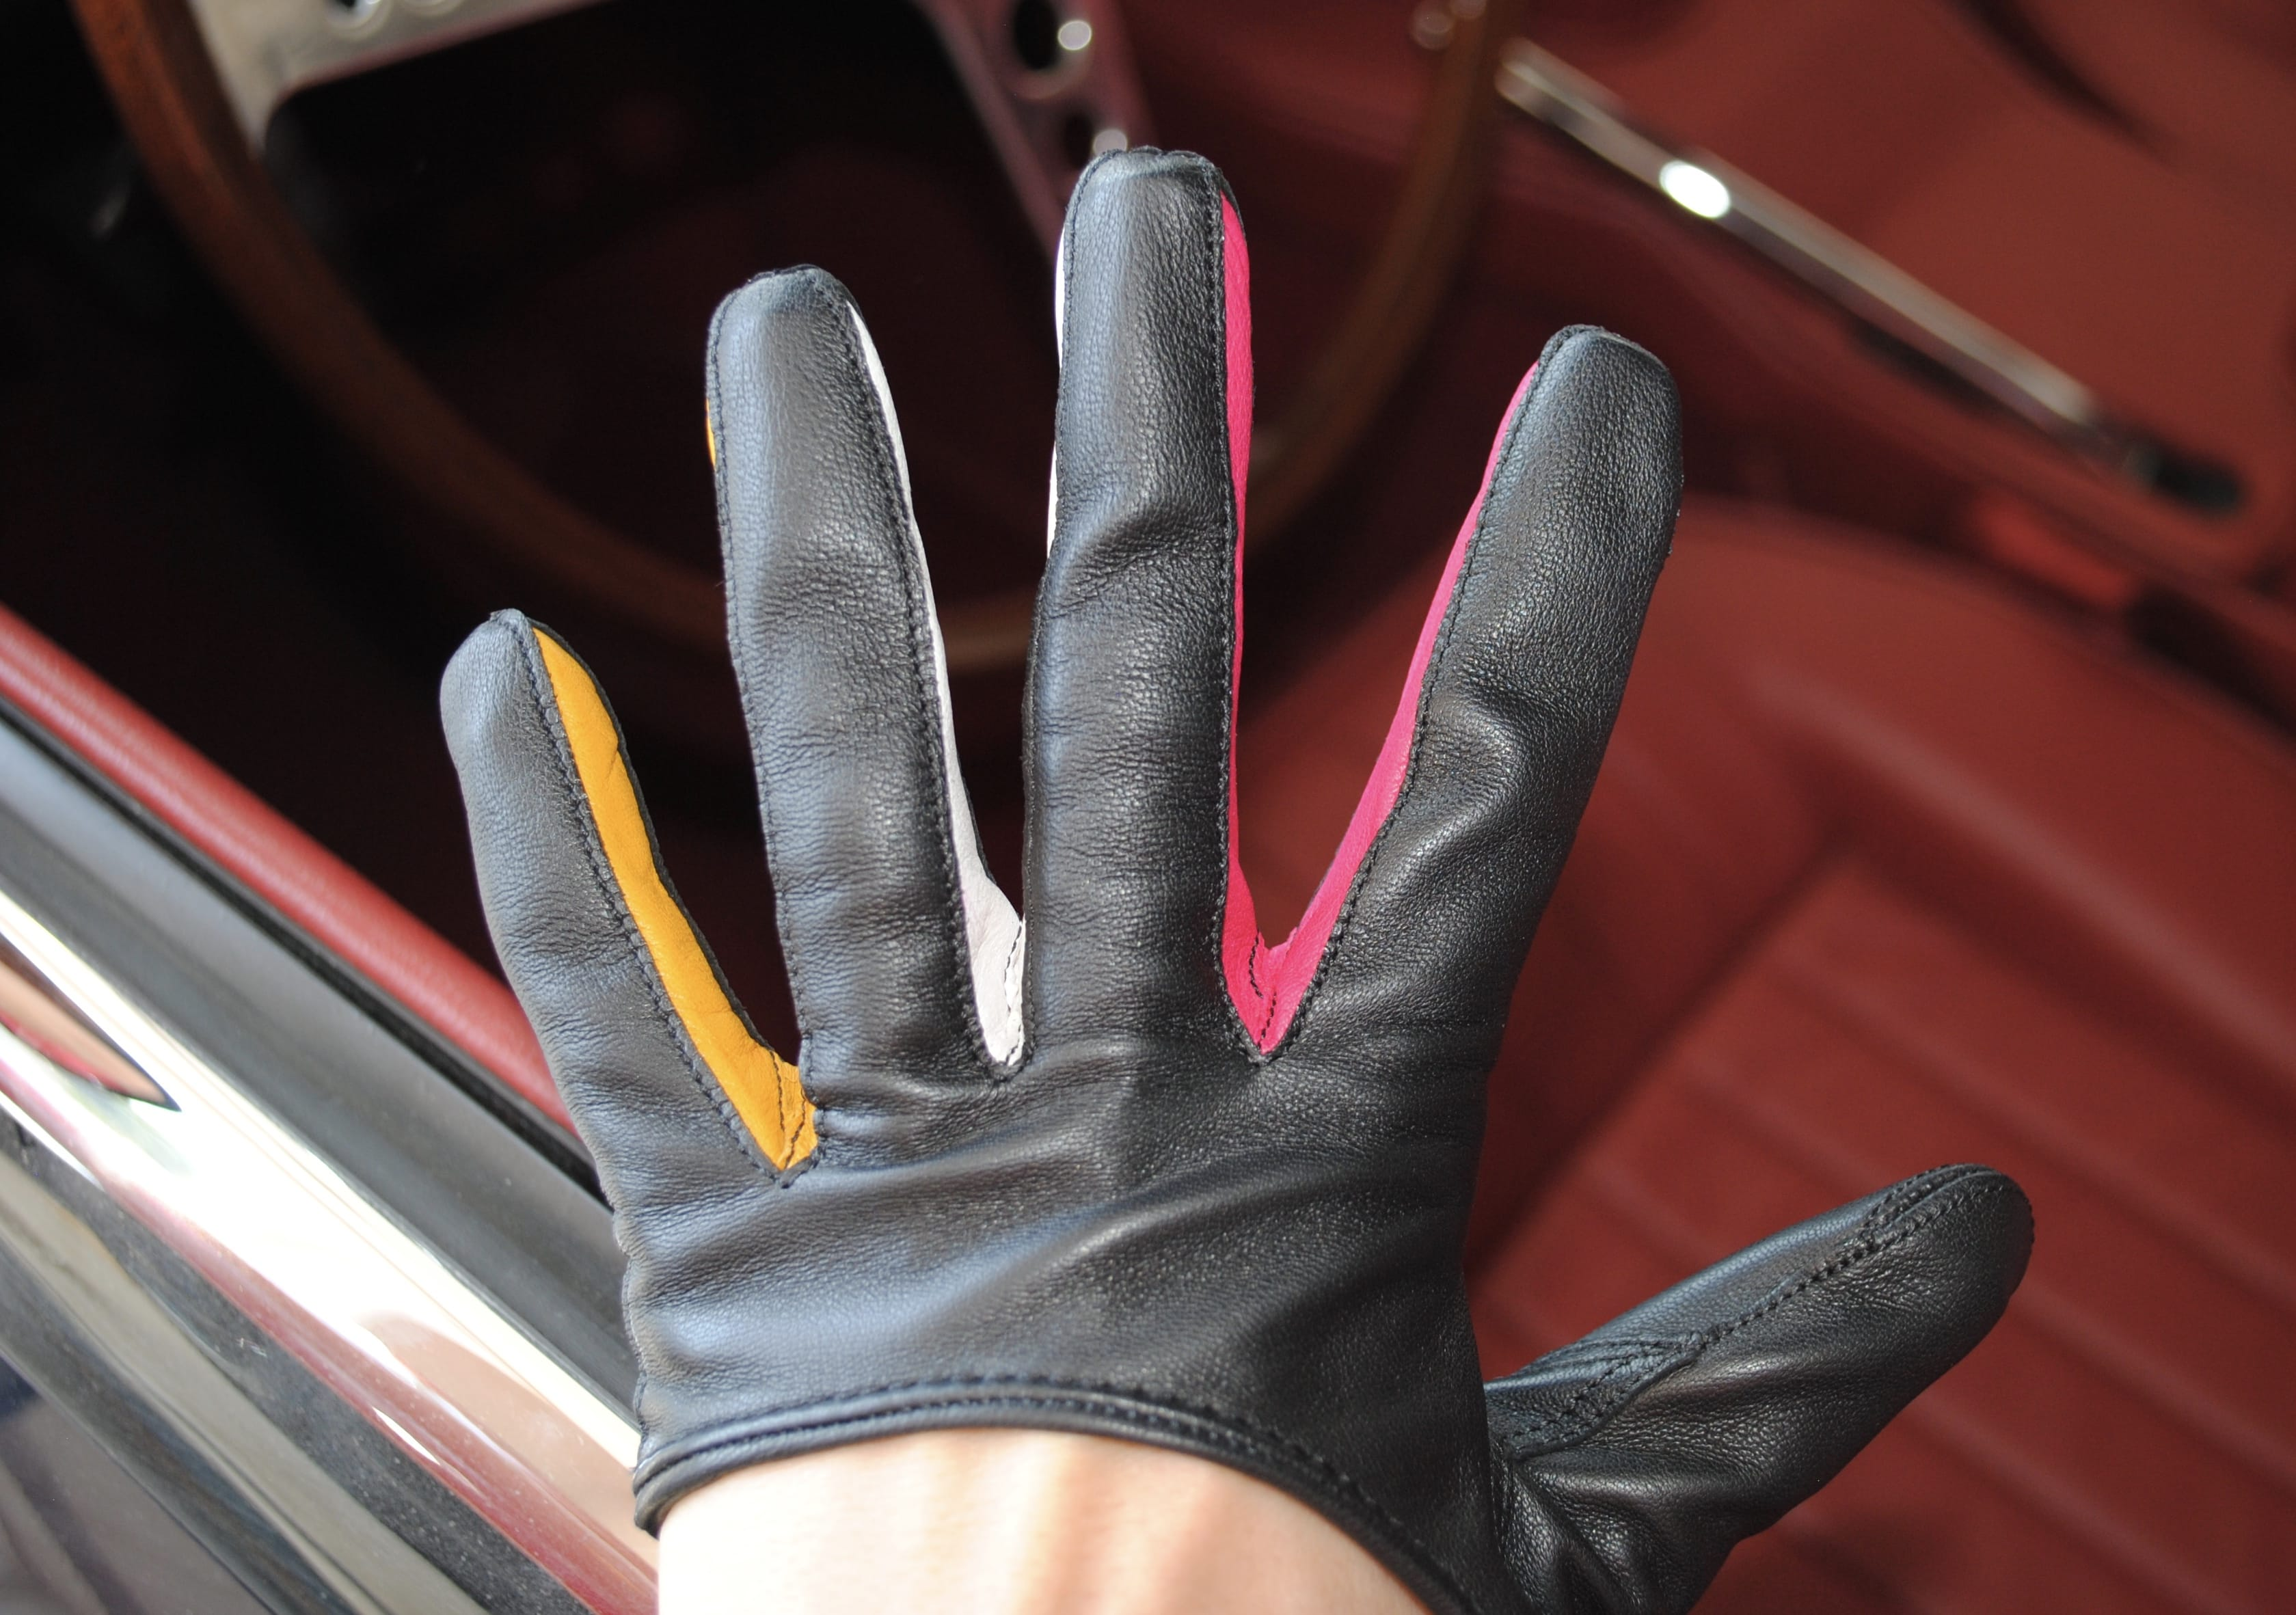 t for you fit gloves design edition find i project them well by decent couldn so driving that myself ferrari were and your kickstarter porsche